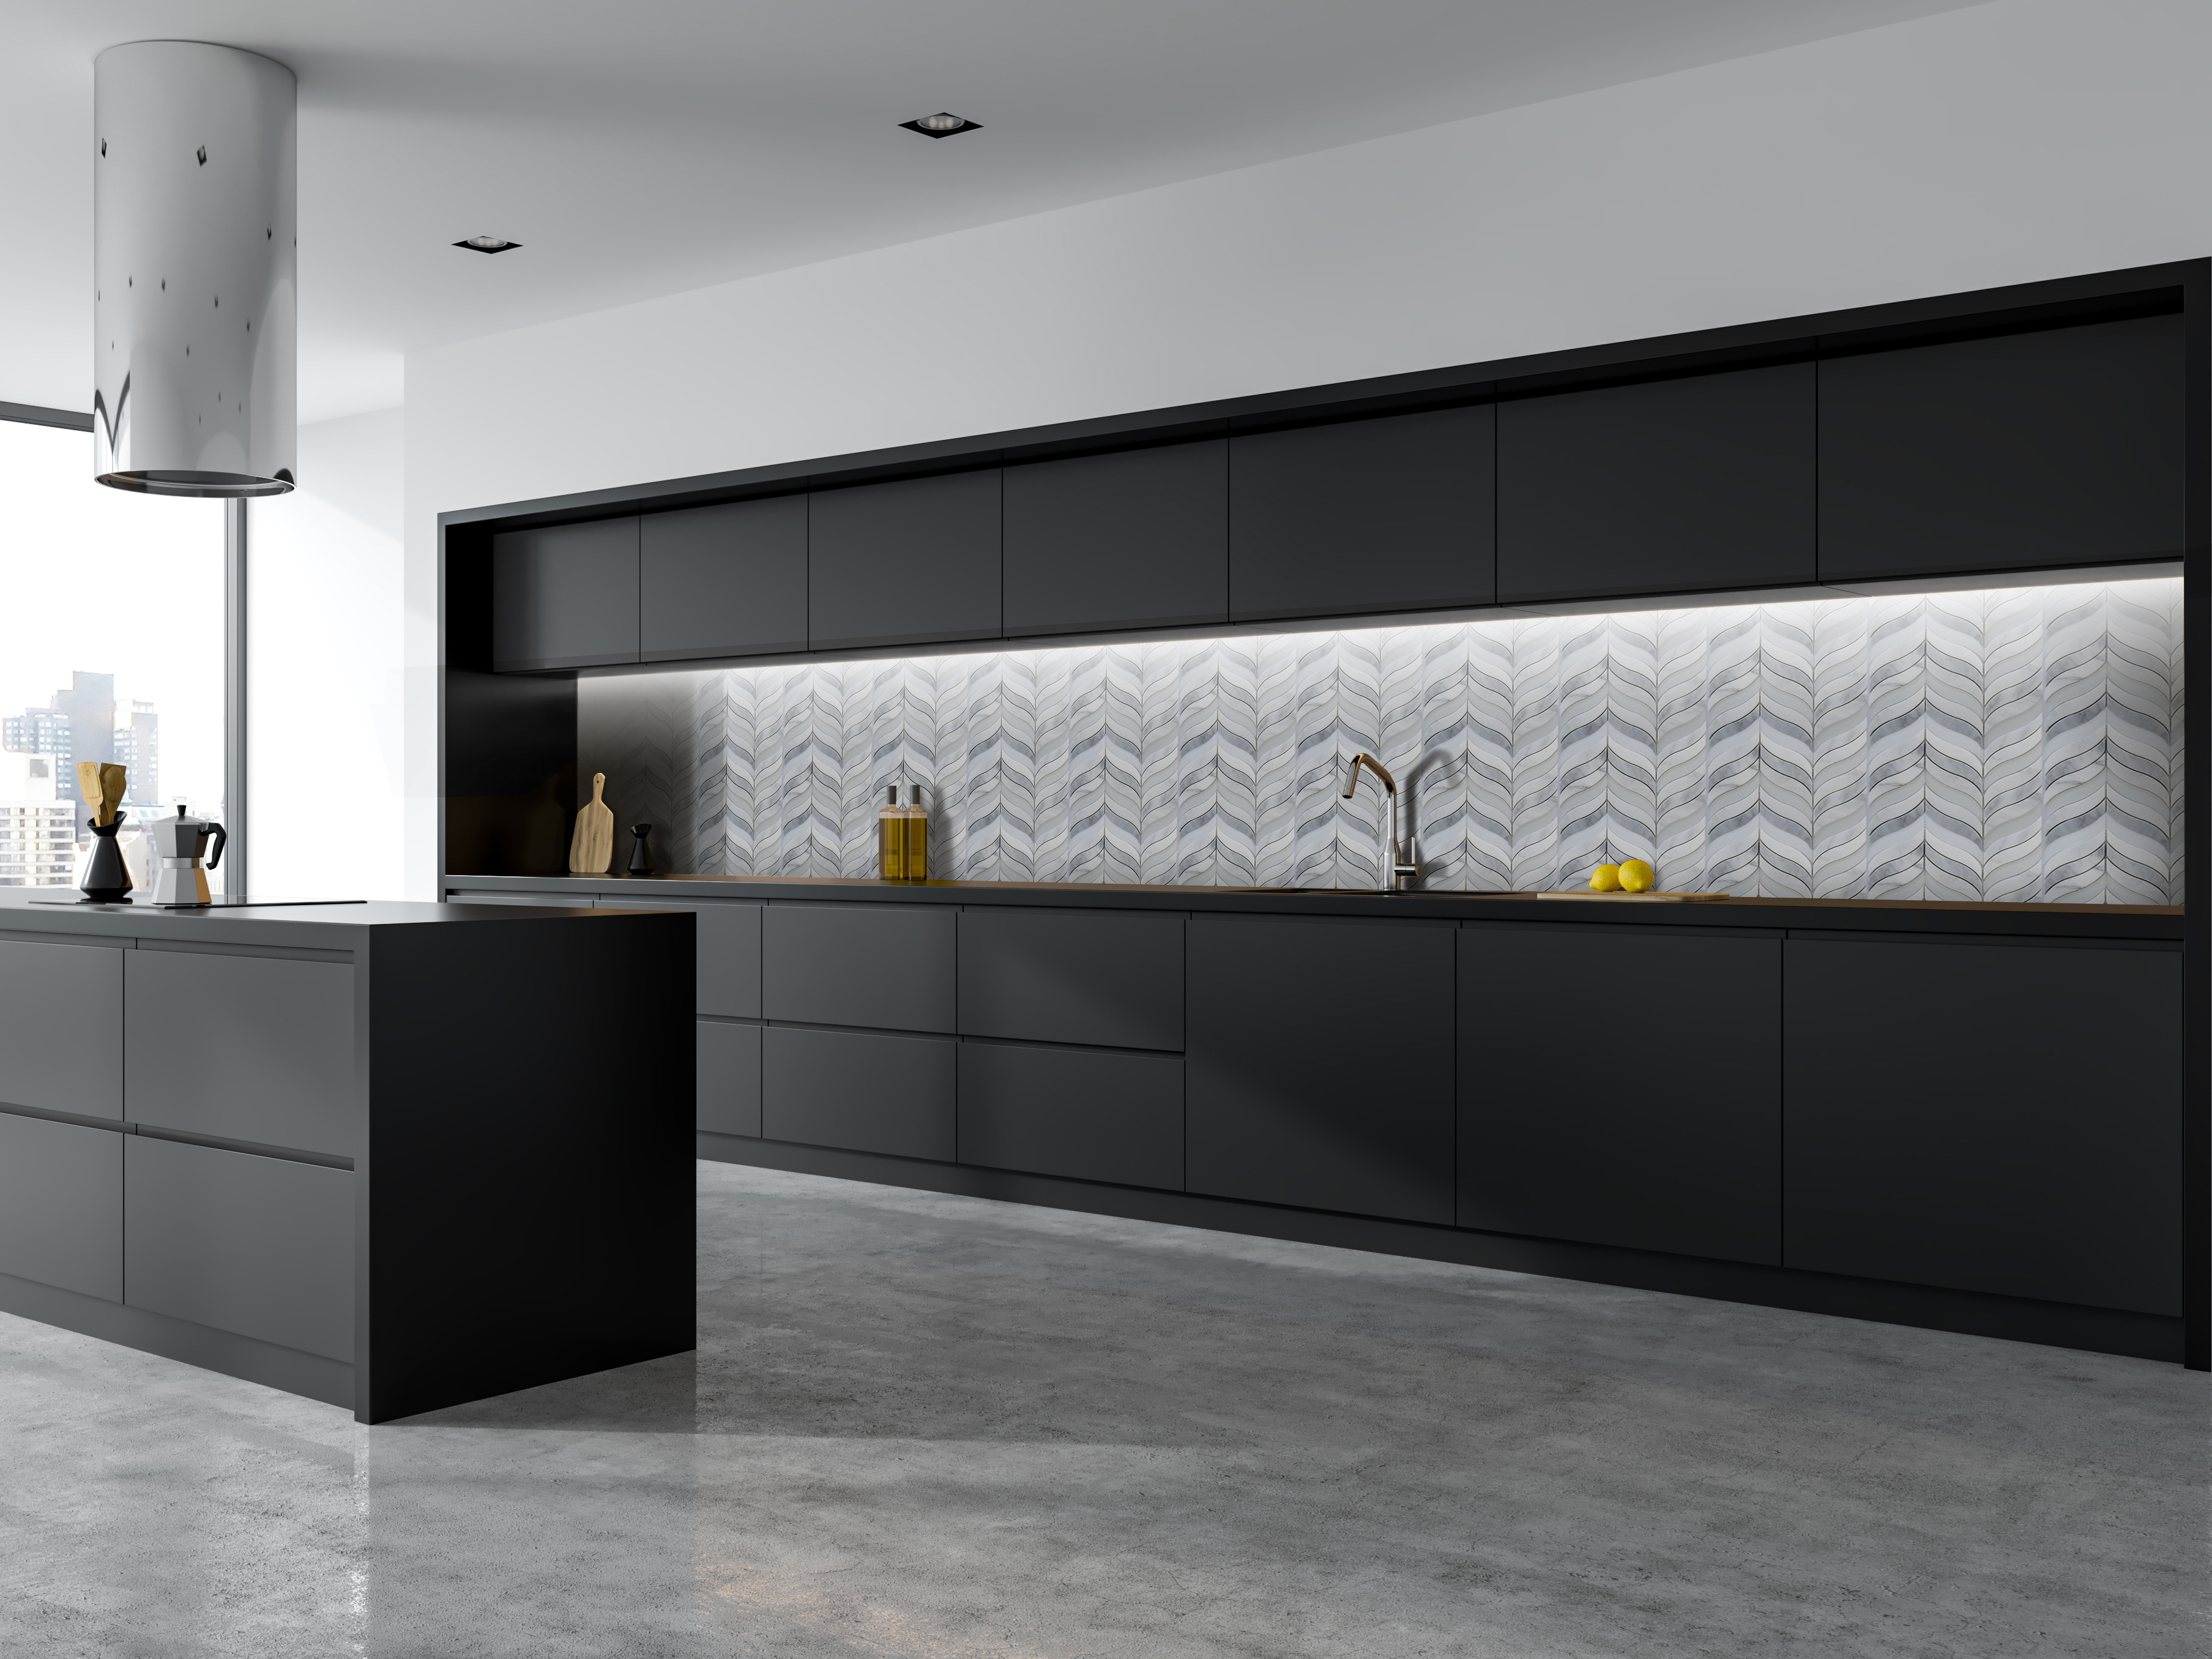 Oriental White Amp Grey Marble With Glass Artistic